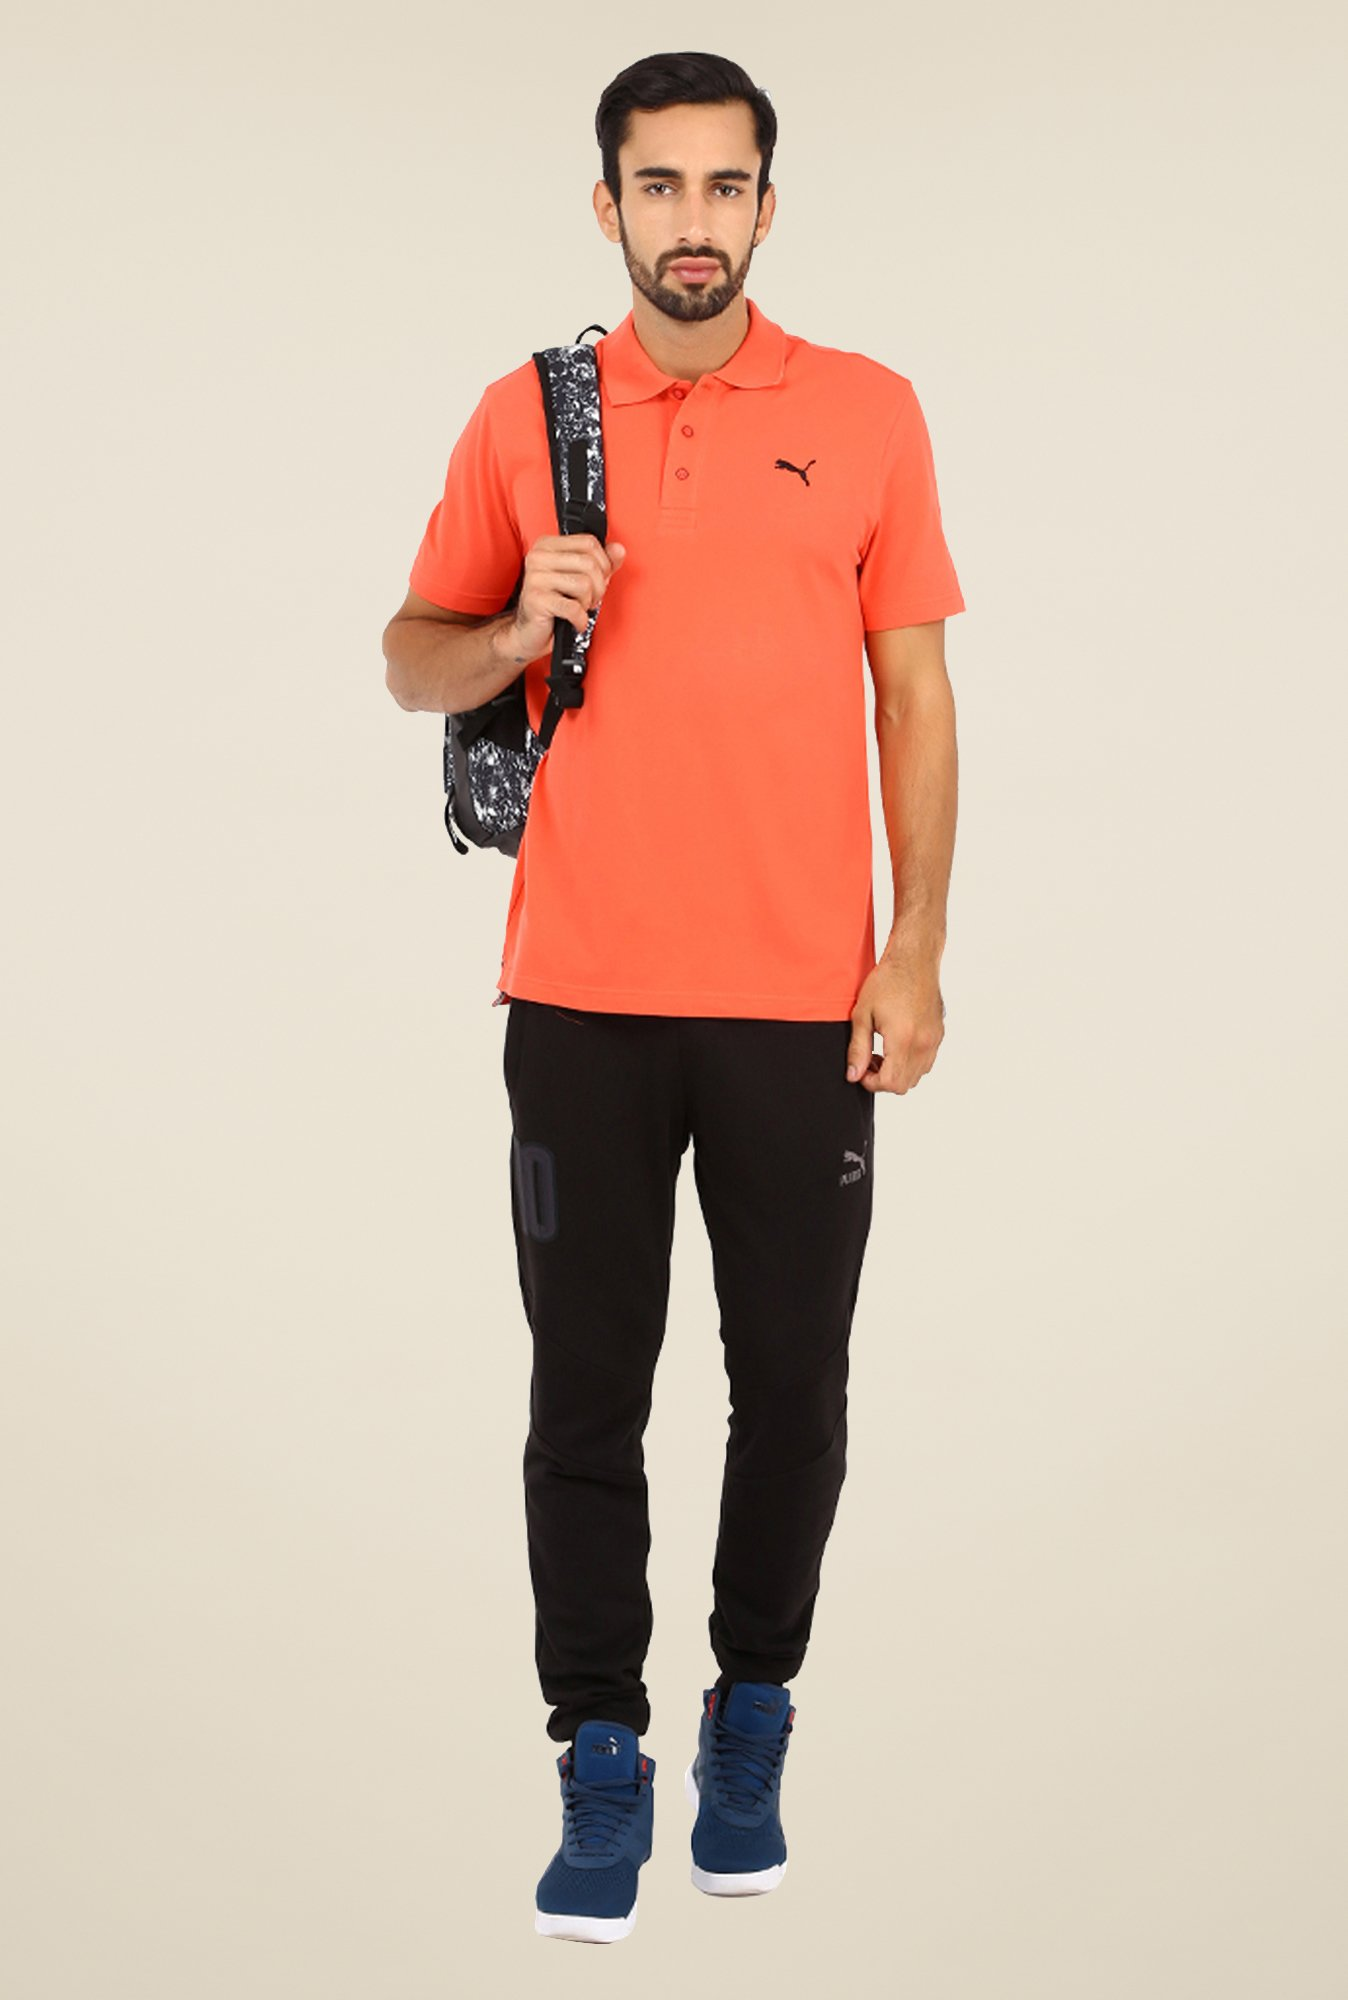 Puma Peach Polo T Shirt